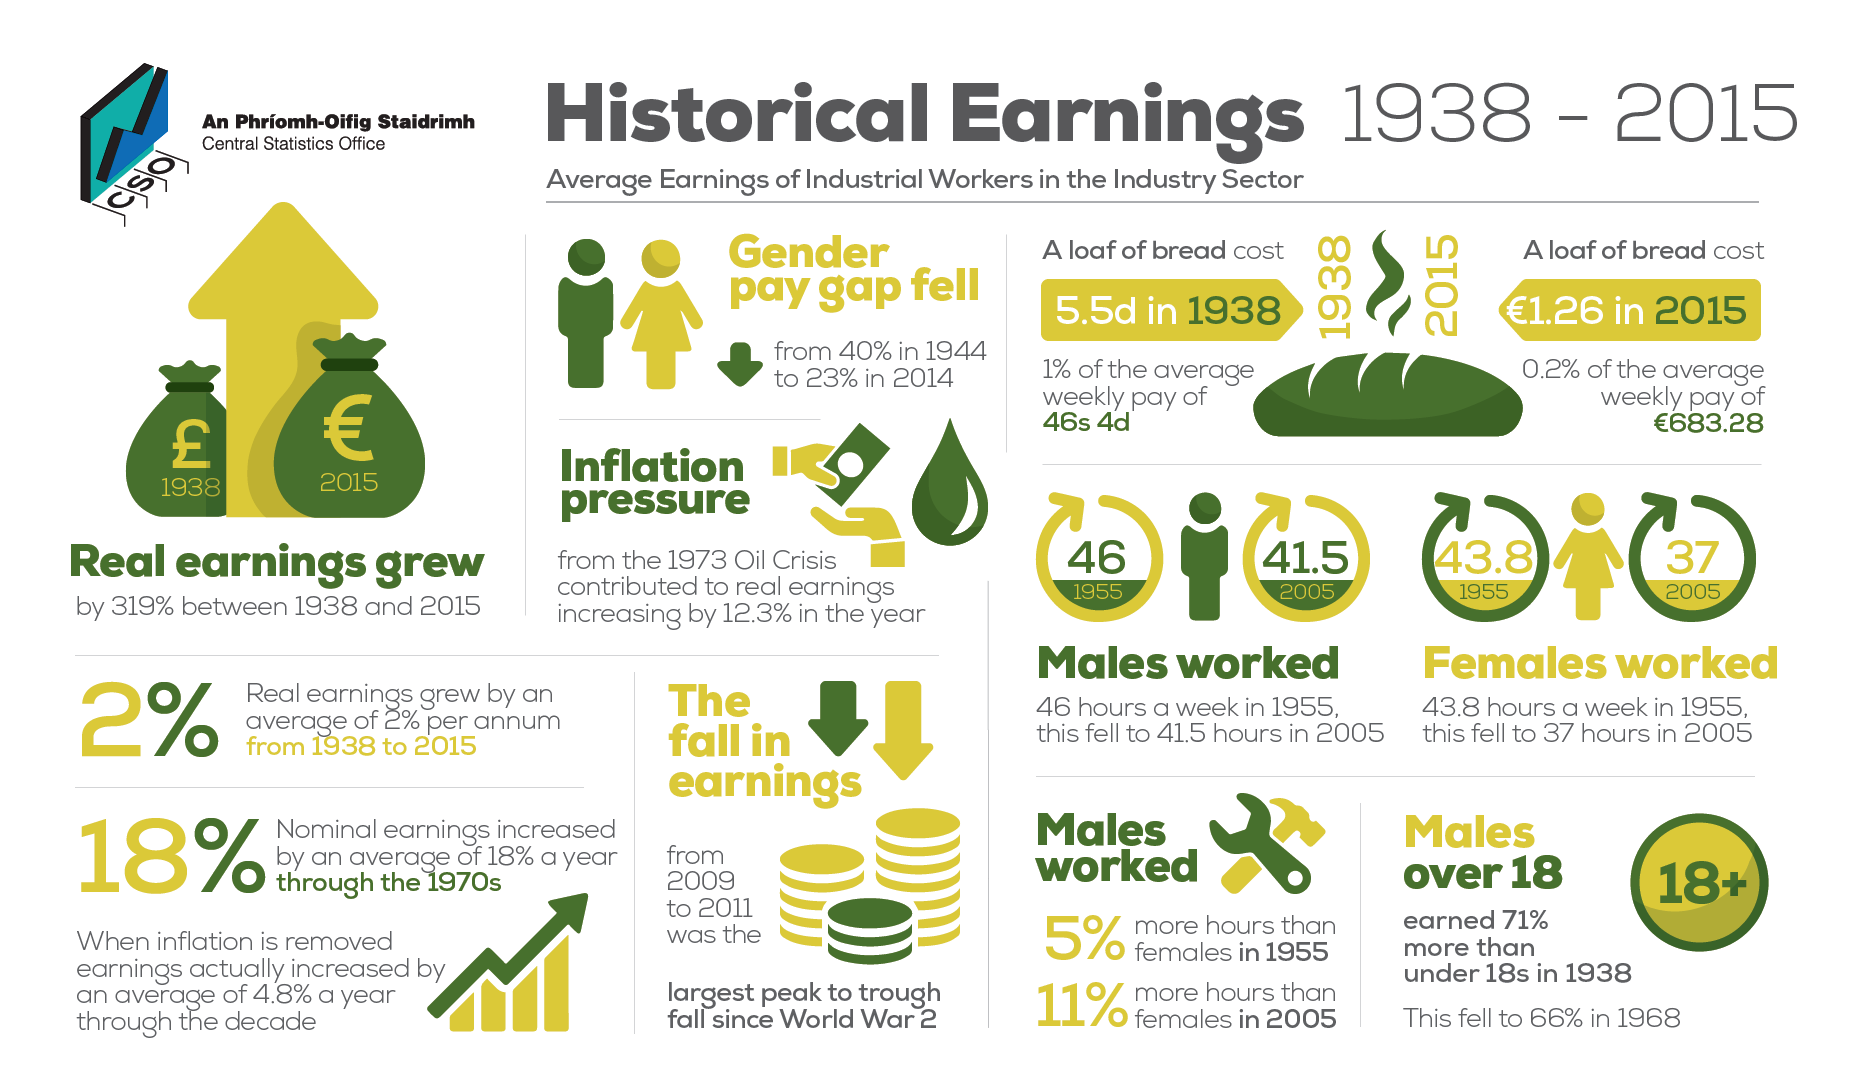 Historical Earnings image